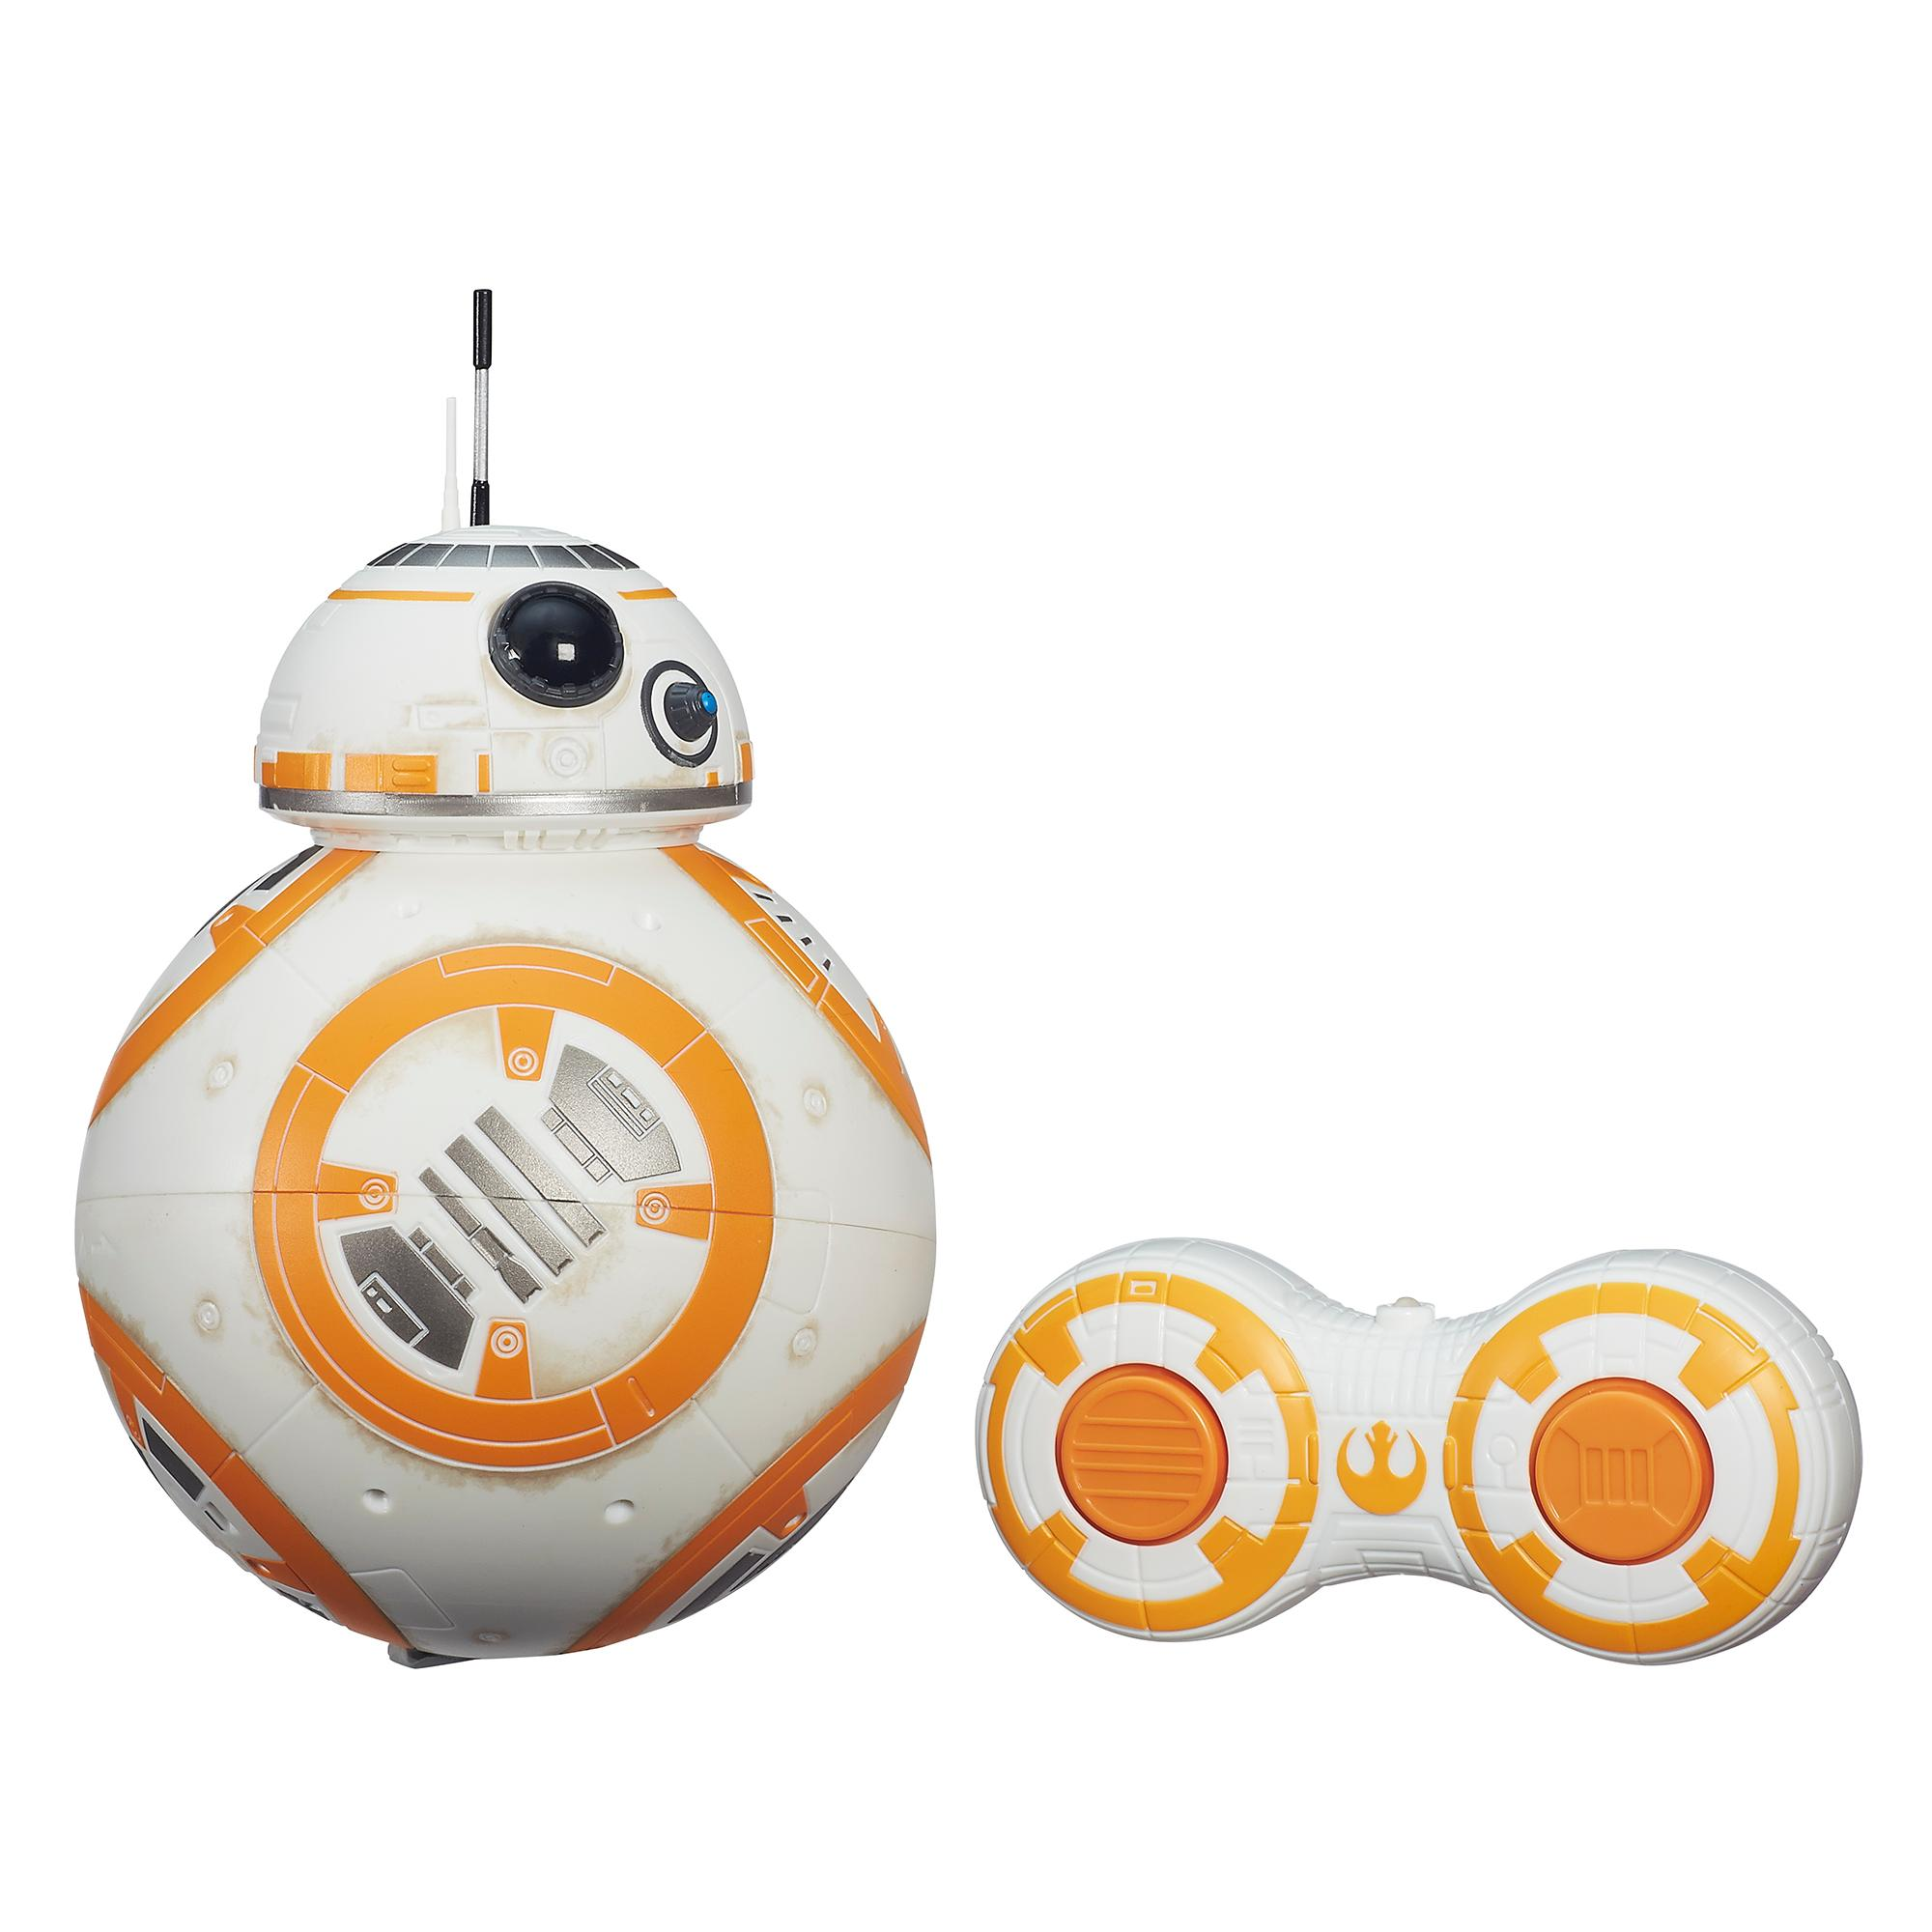 Star Wars The Force Awakens BB 8 Exclusive R C Robot